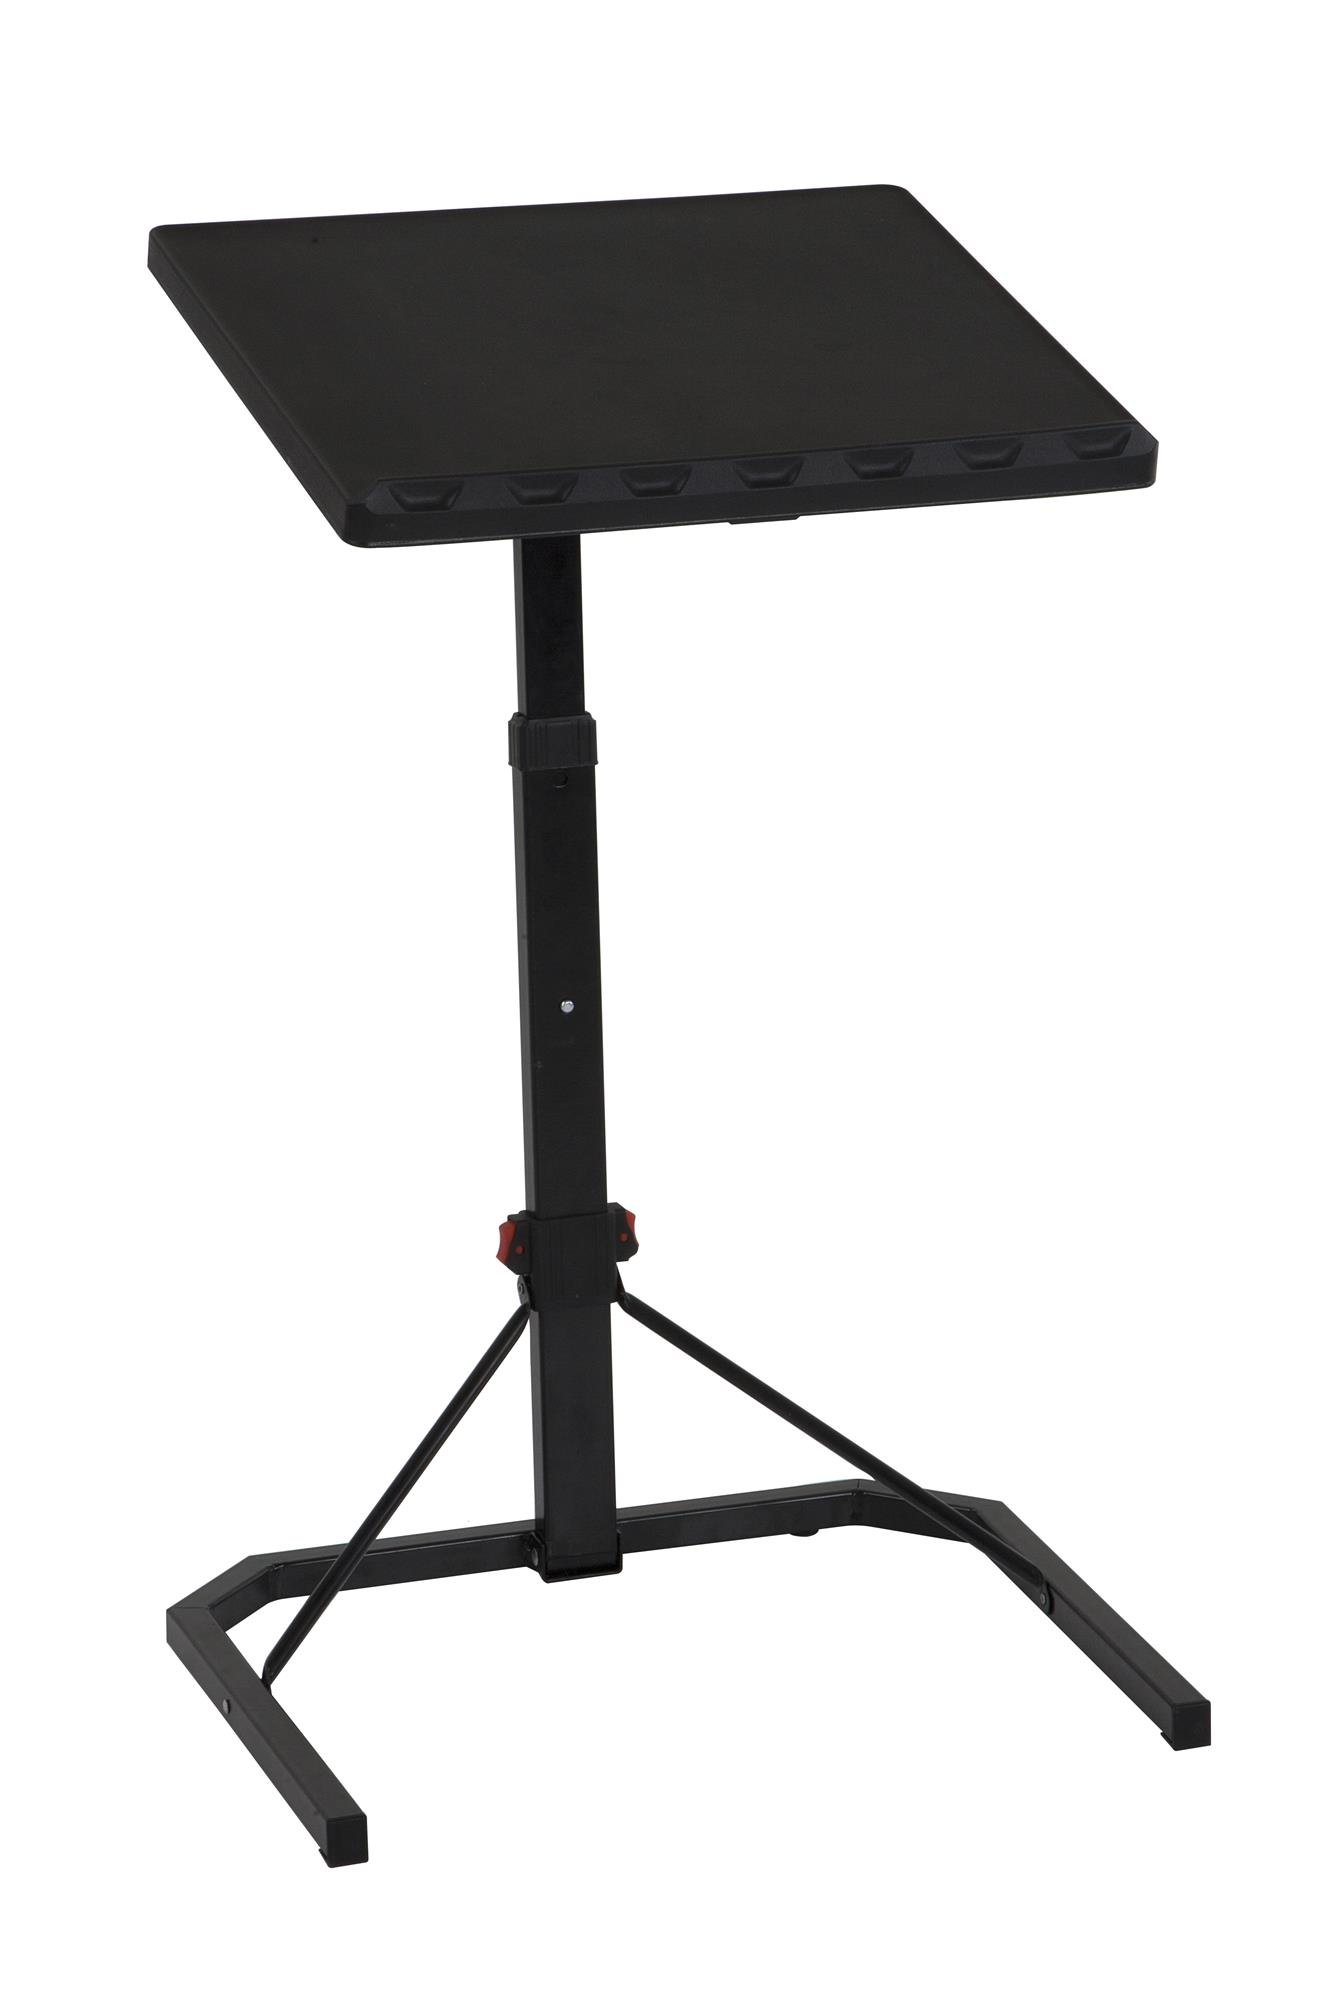 Cosco 37118BLK1E Multi-Functional Personal Folding Table